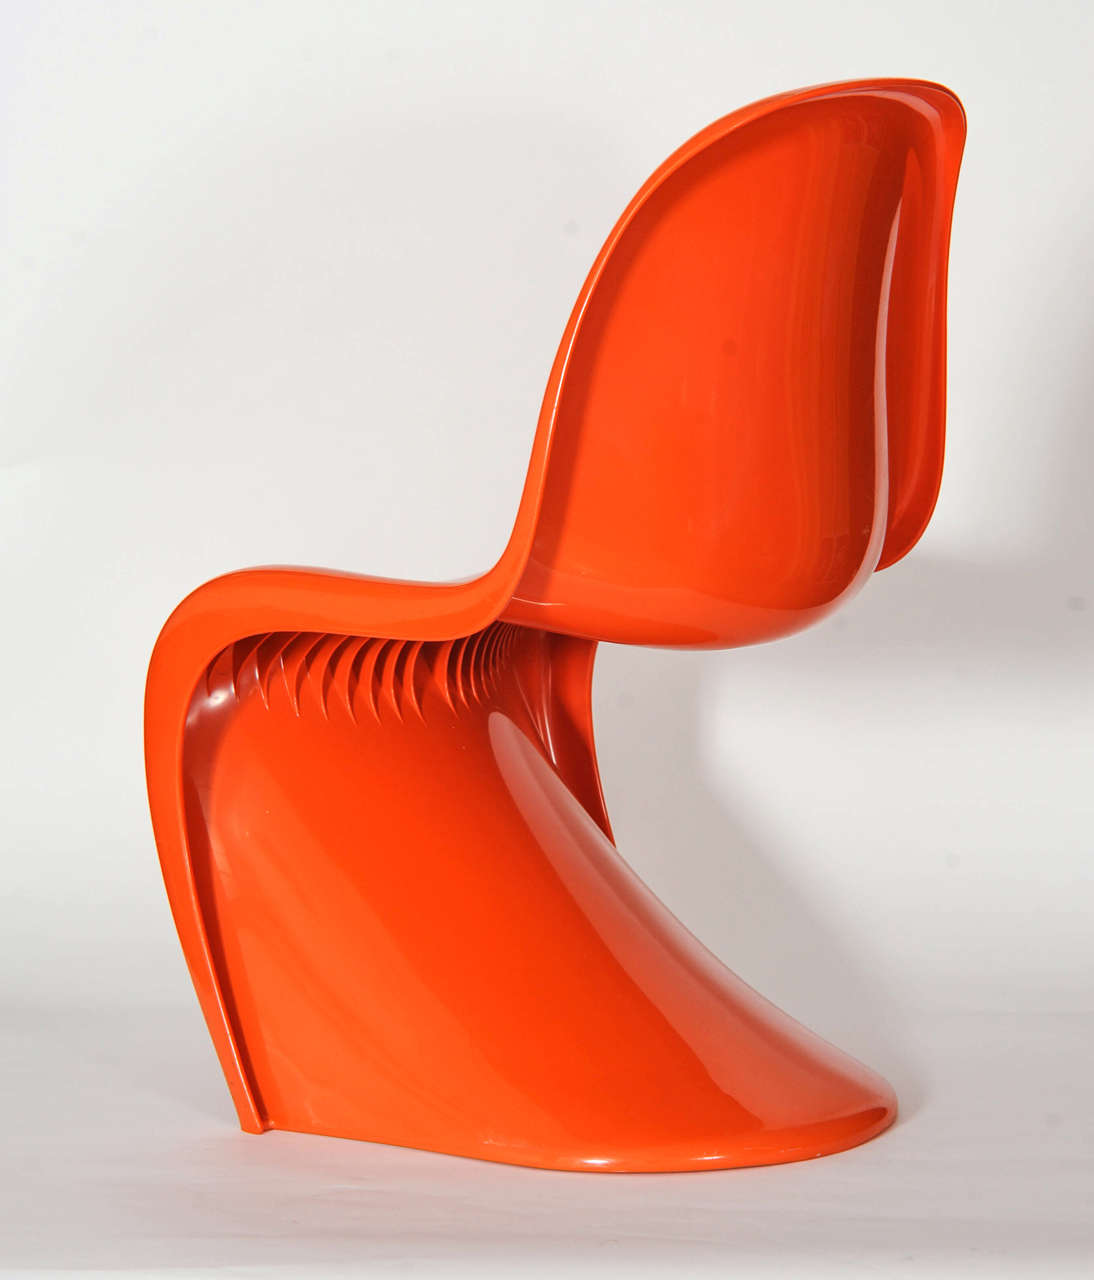 set of two original panton s chairs for sale at 1stdibs. Black Bedroom Furniture Sets. Home Design Ideas